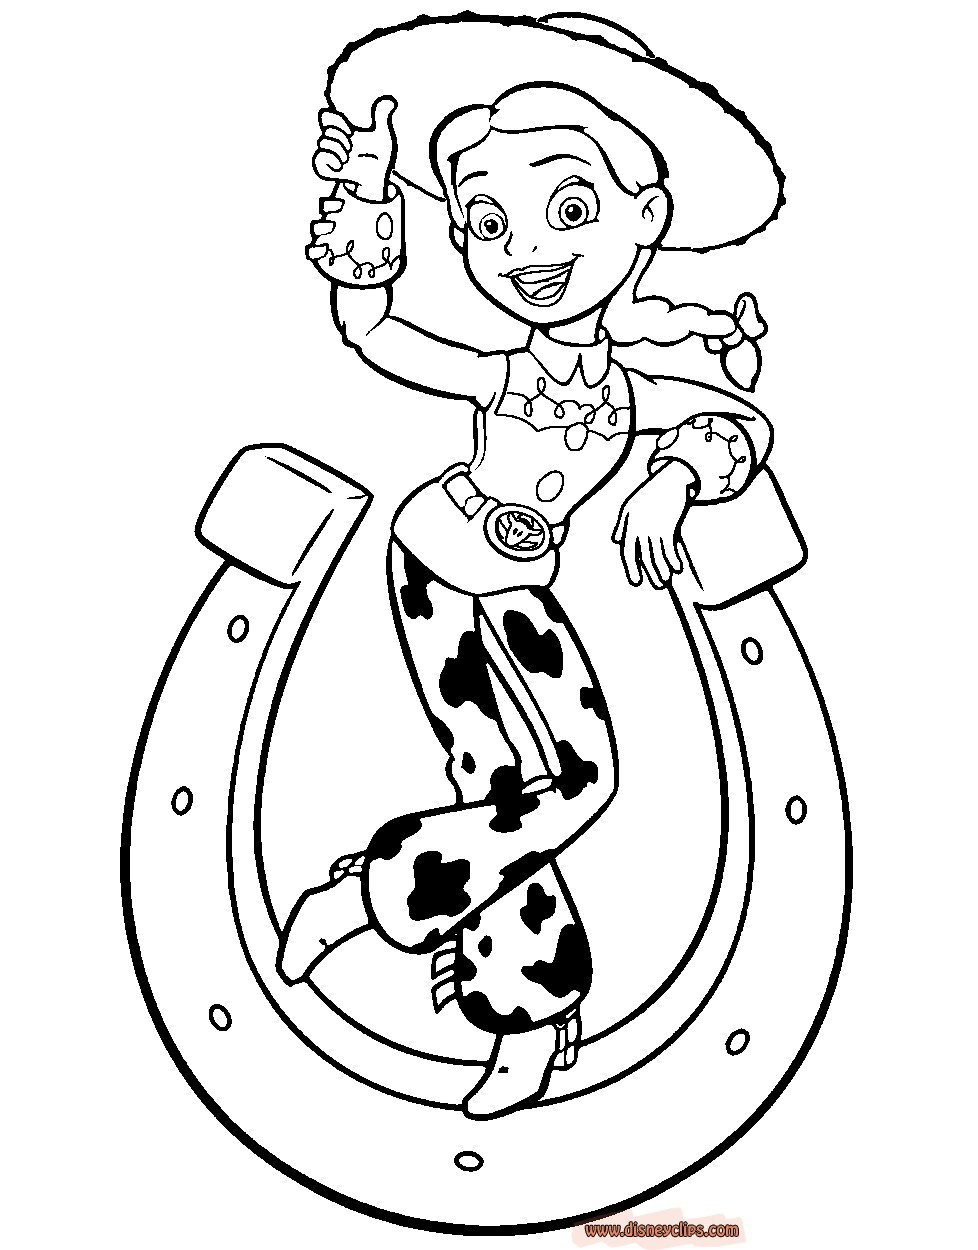 jessie coloring pages jessie from toy story coloring pages coloring pages coloring jessie pages